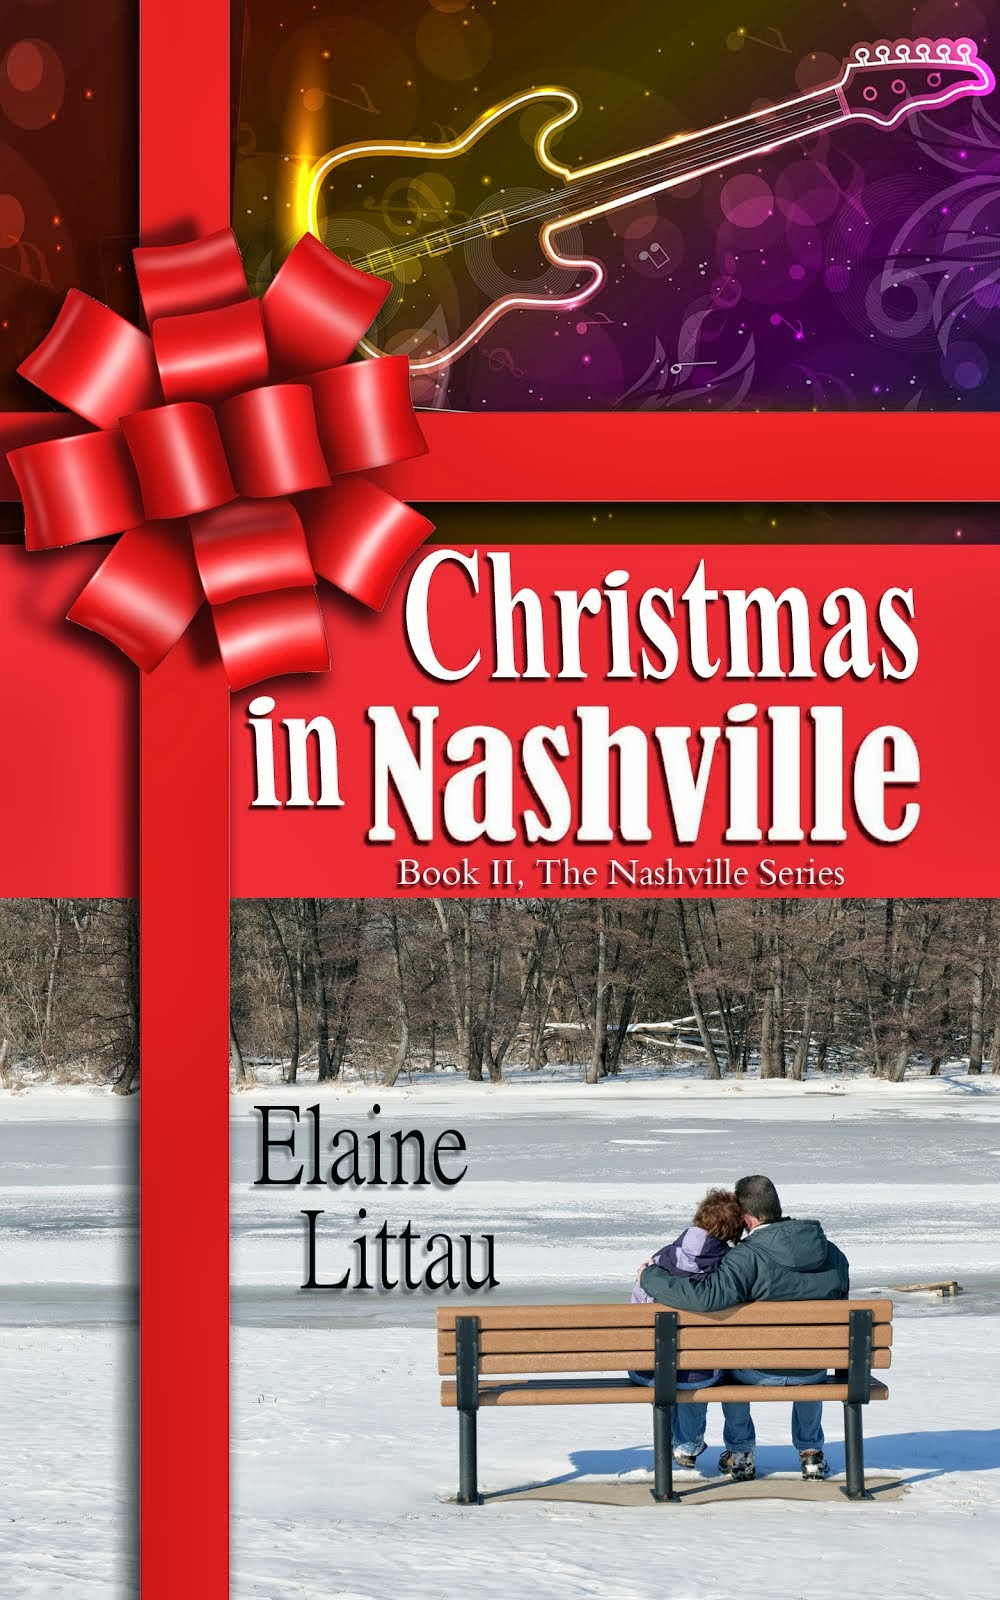 Christmas in Nashville, Book II of the Nashville Series